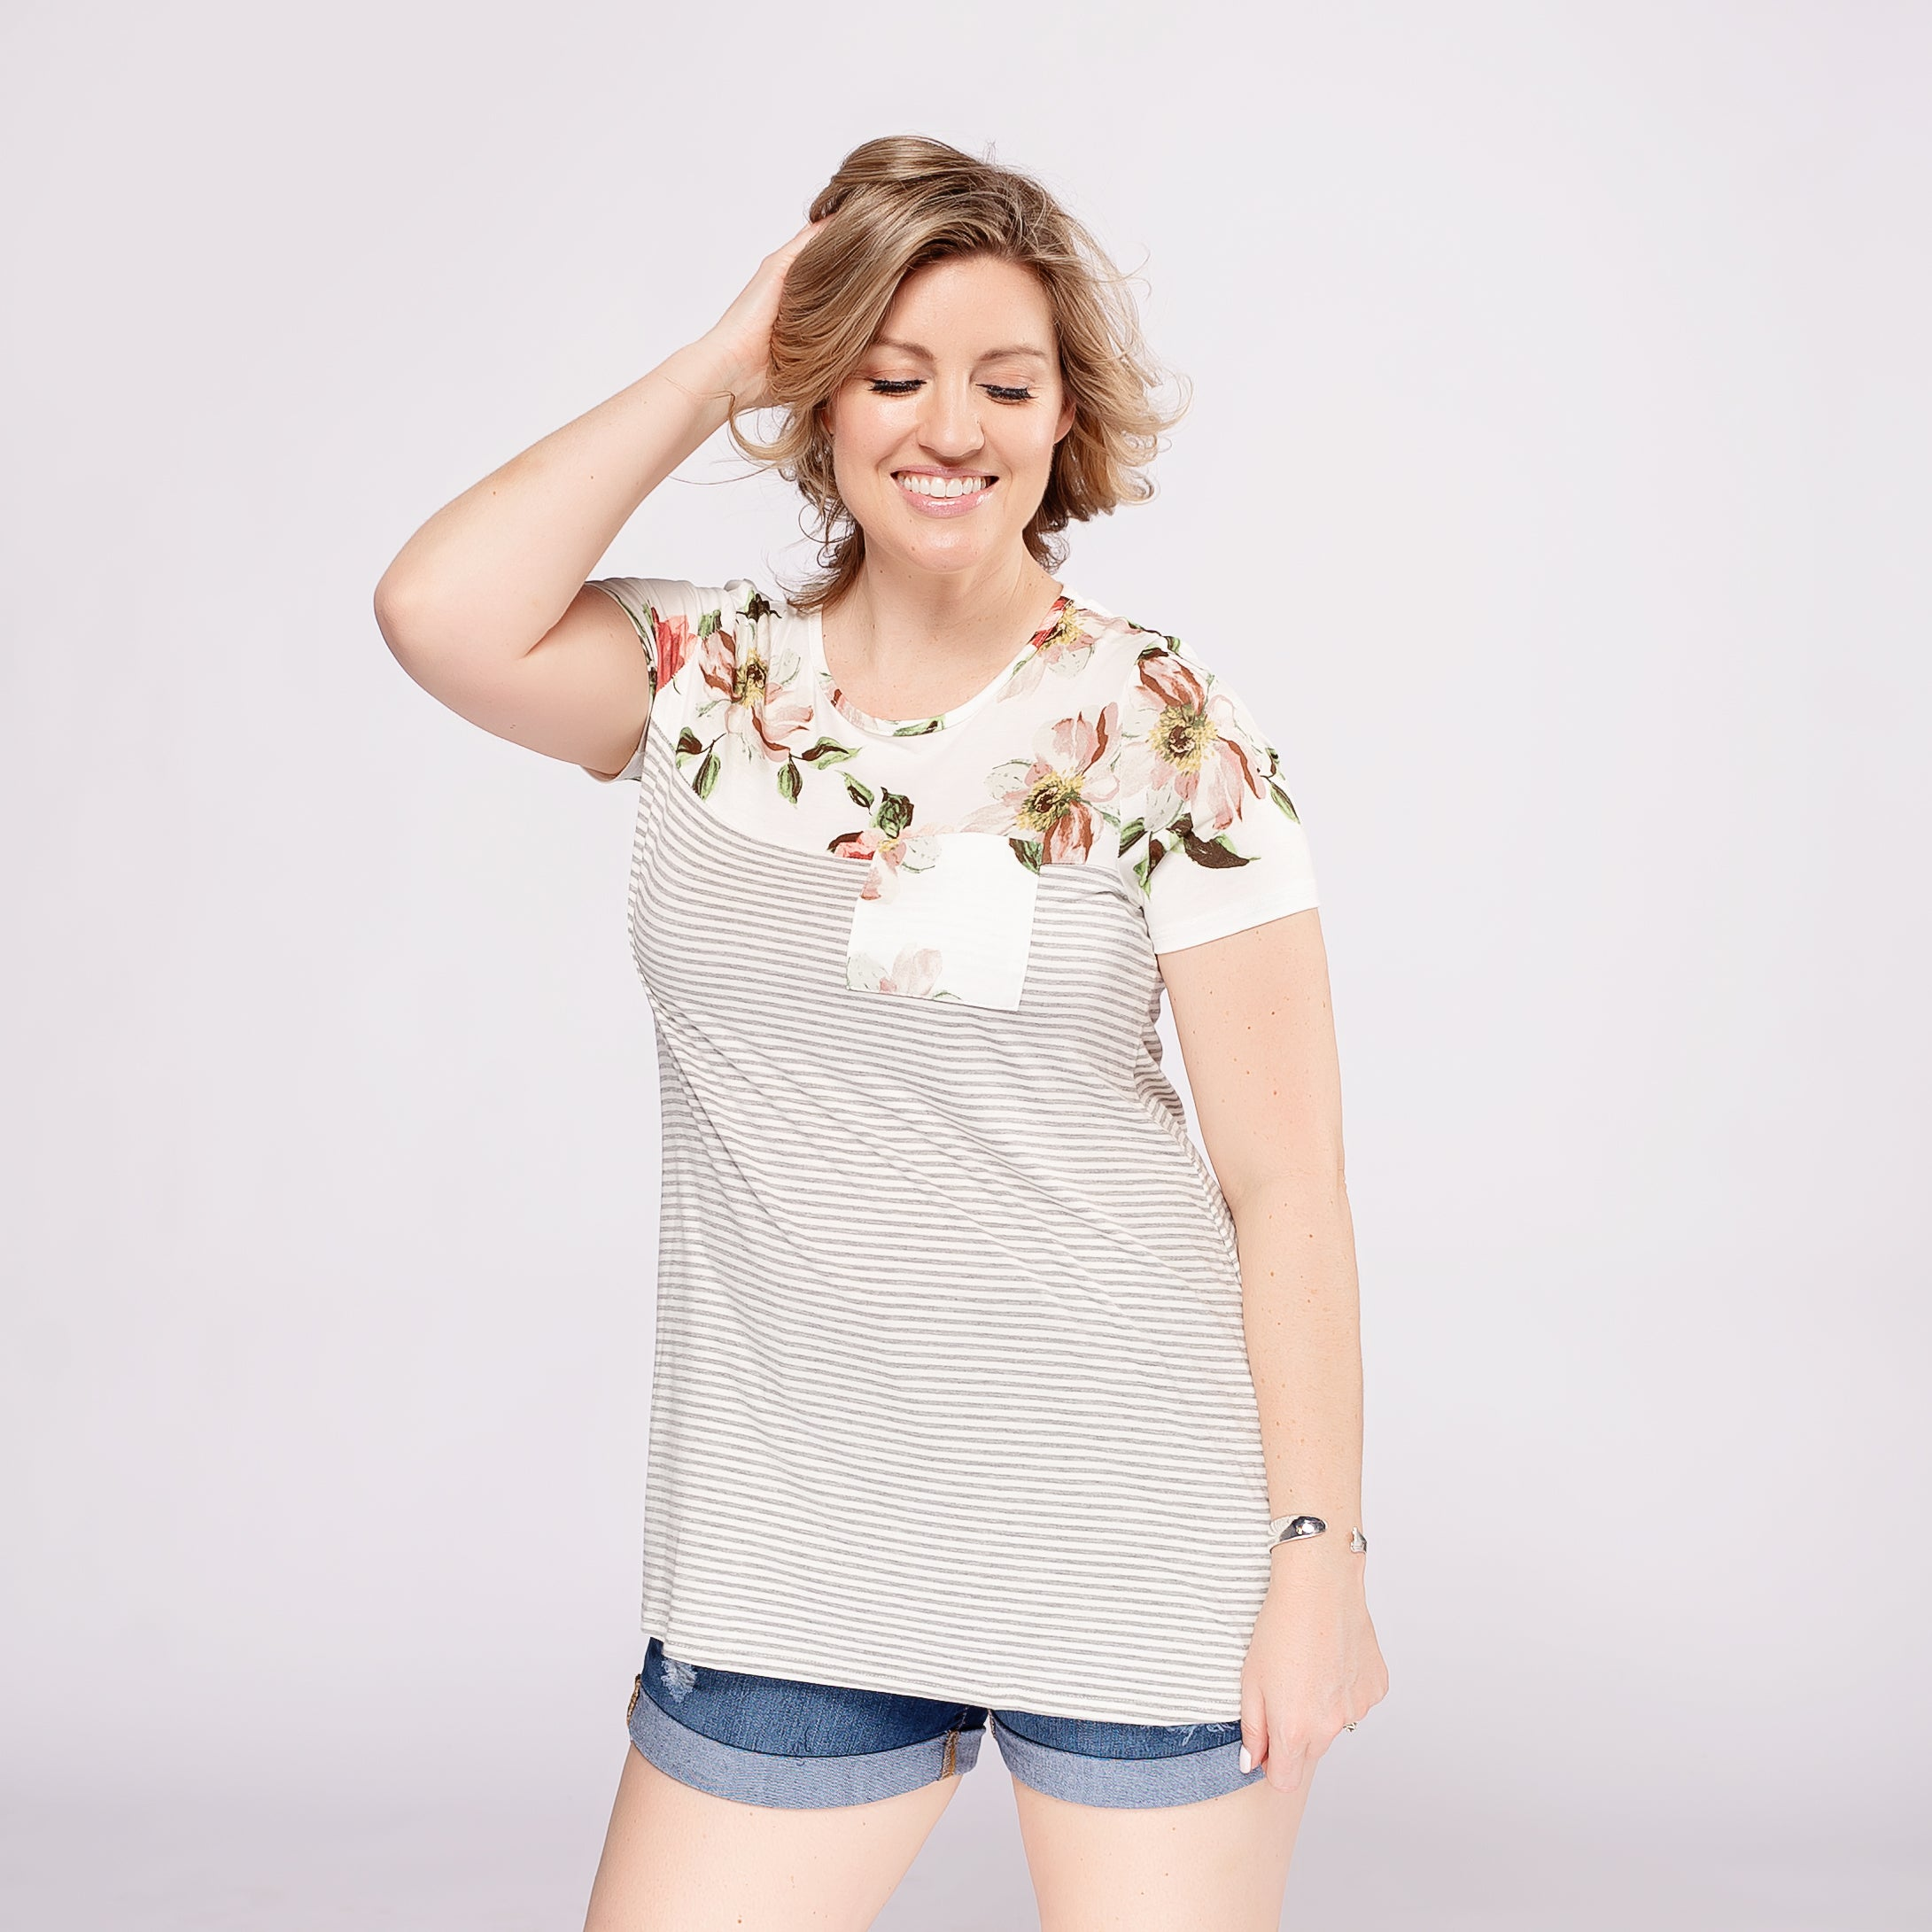 Floral Top with Pin Stripe Body